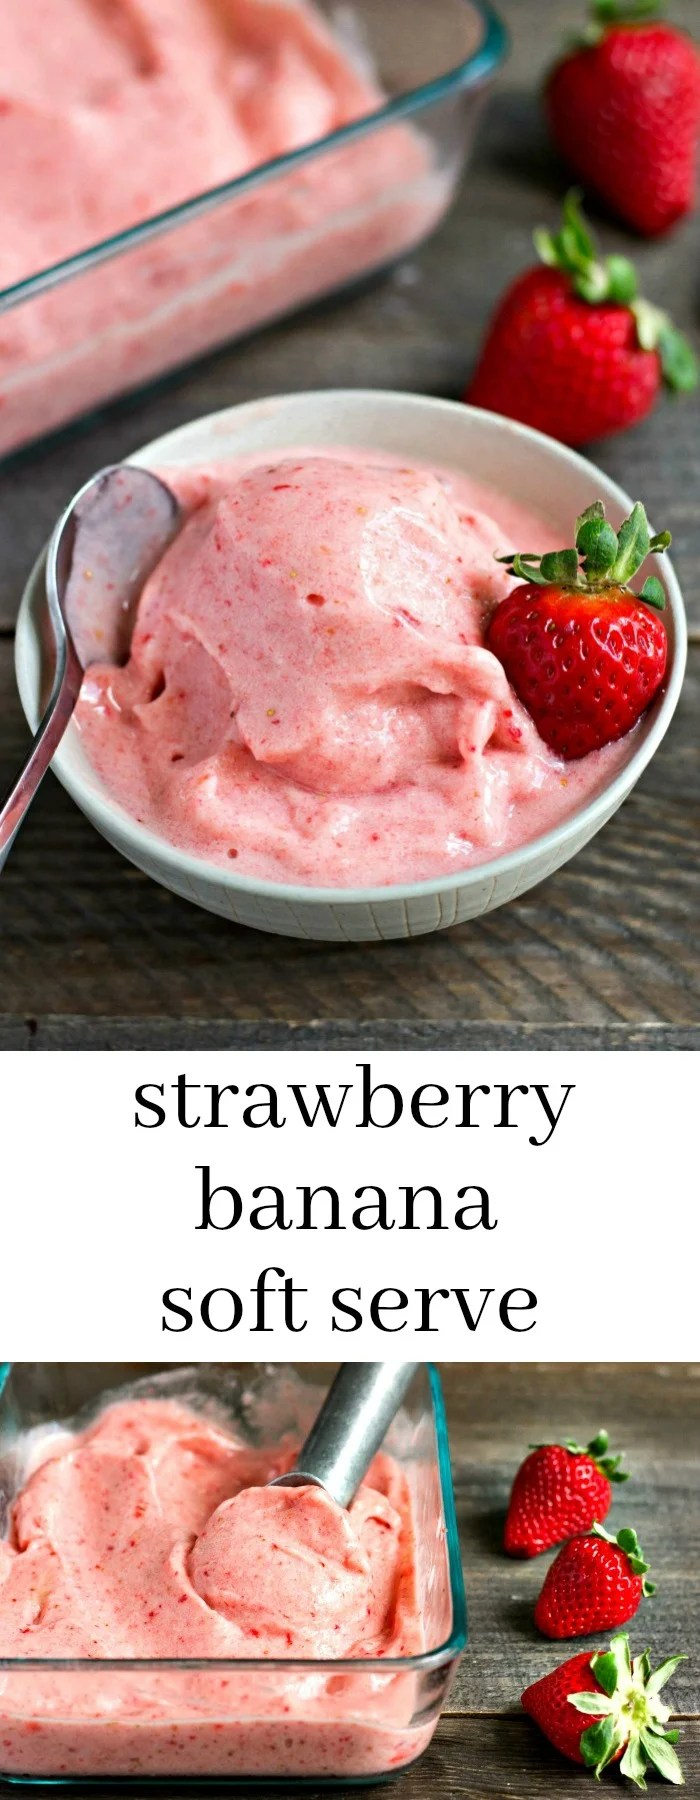 This strawberry banana soft serve ice cream is such an easy vegan dessert recipe. You just need 4 ingredients and 5 minutes to make this simple summer treat!